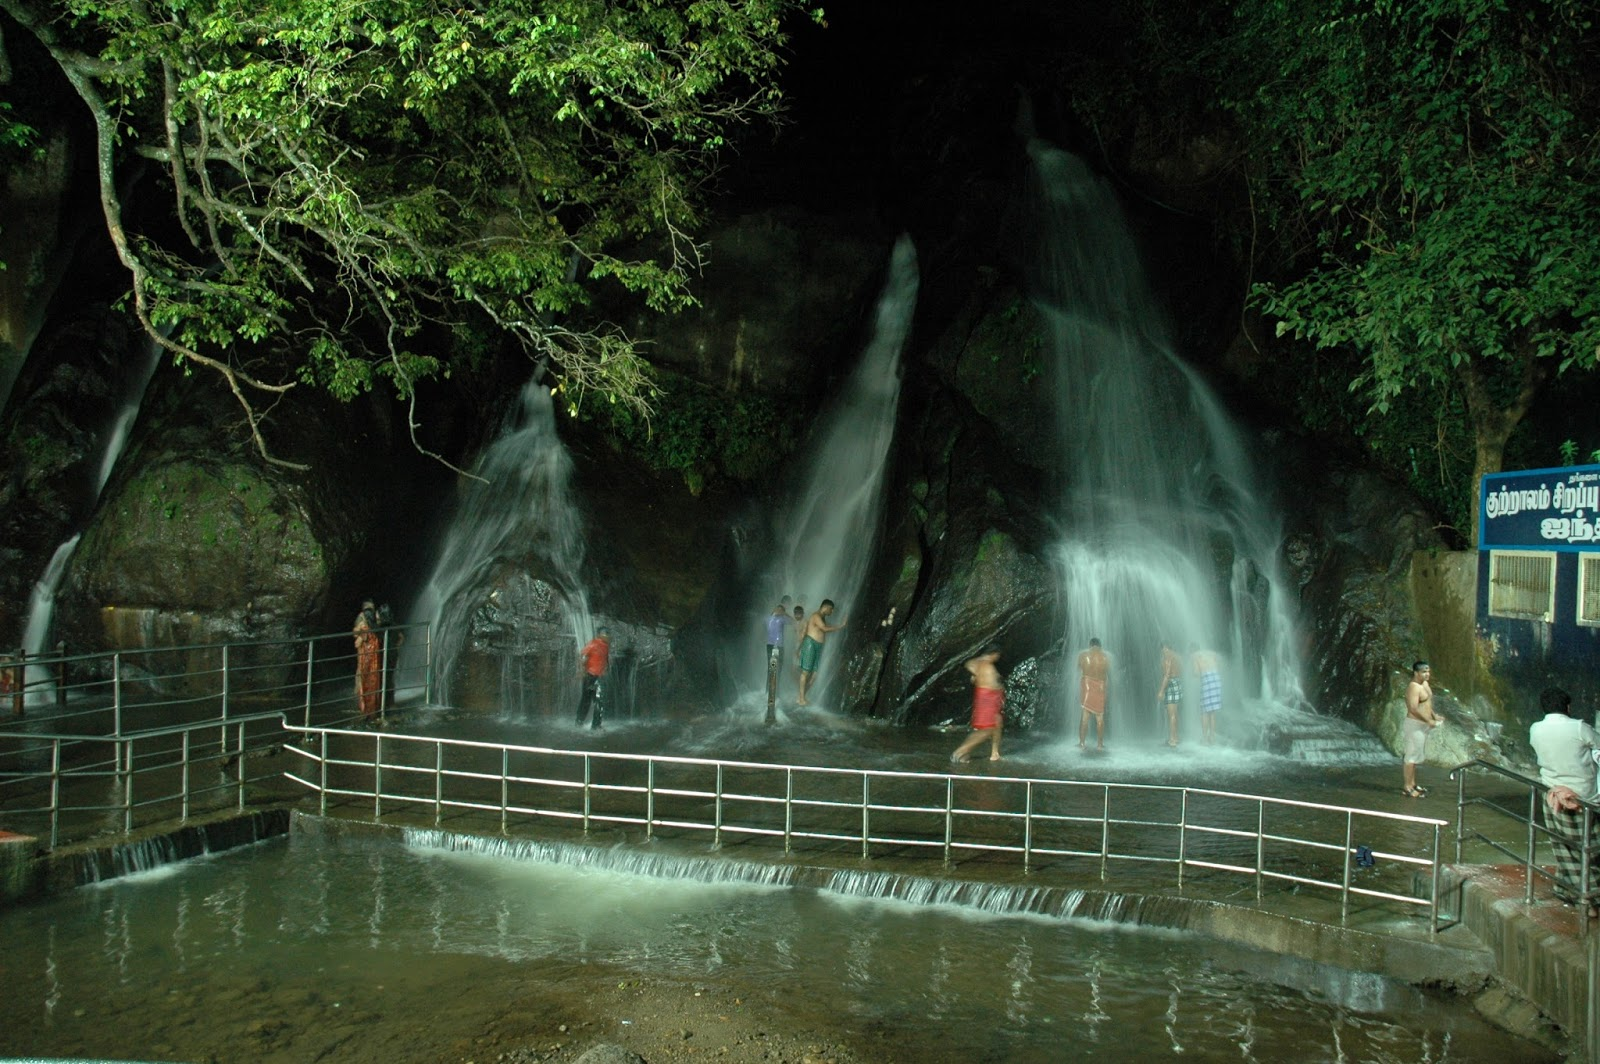 Courtallam India  city photos gallery : Courtallam Waterfall City Of Tamil Nadu | India Tourism